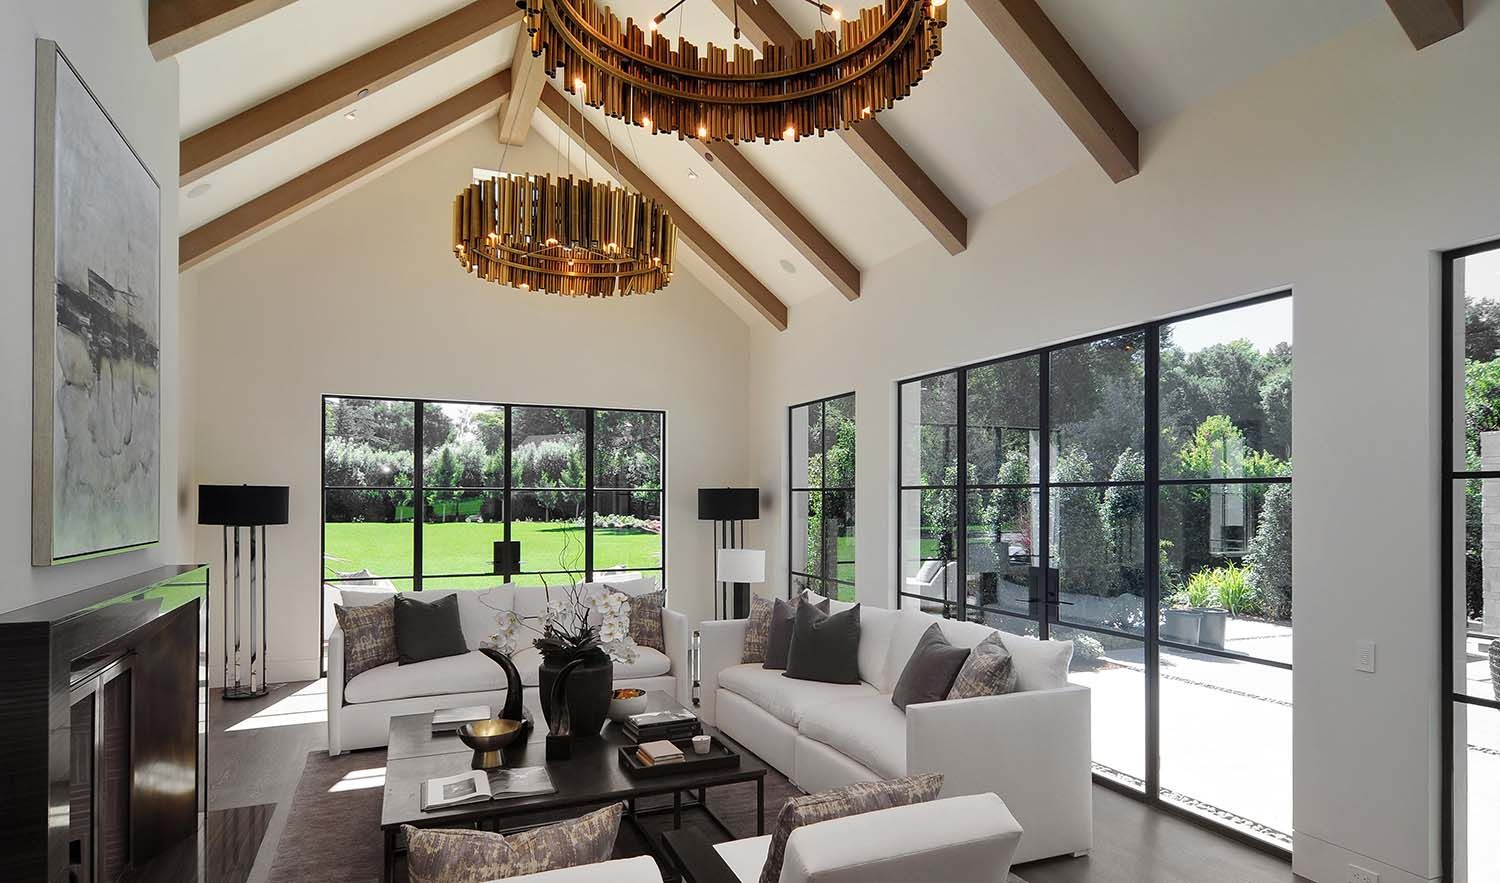 Spectacular California Home Inspired By Northern European Architecture Luxury House Interior Design Contemporary House Contemporary Home Decor